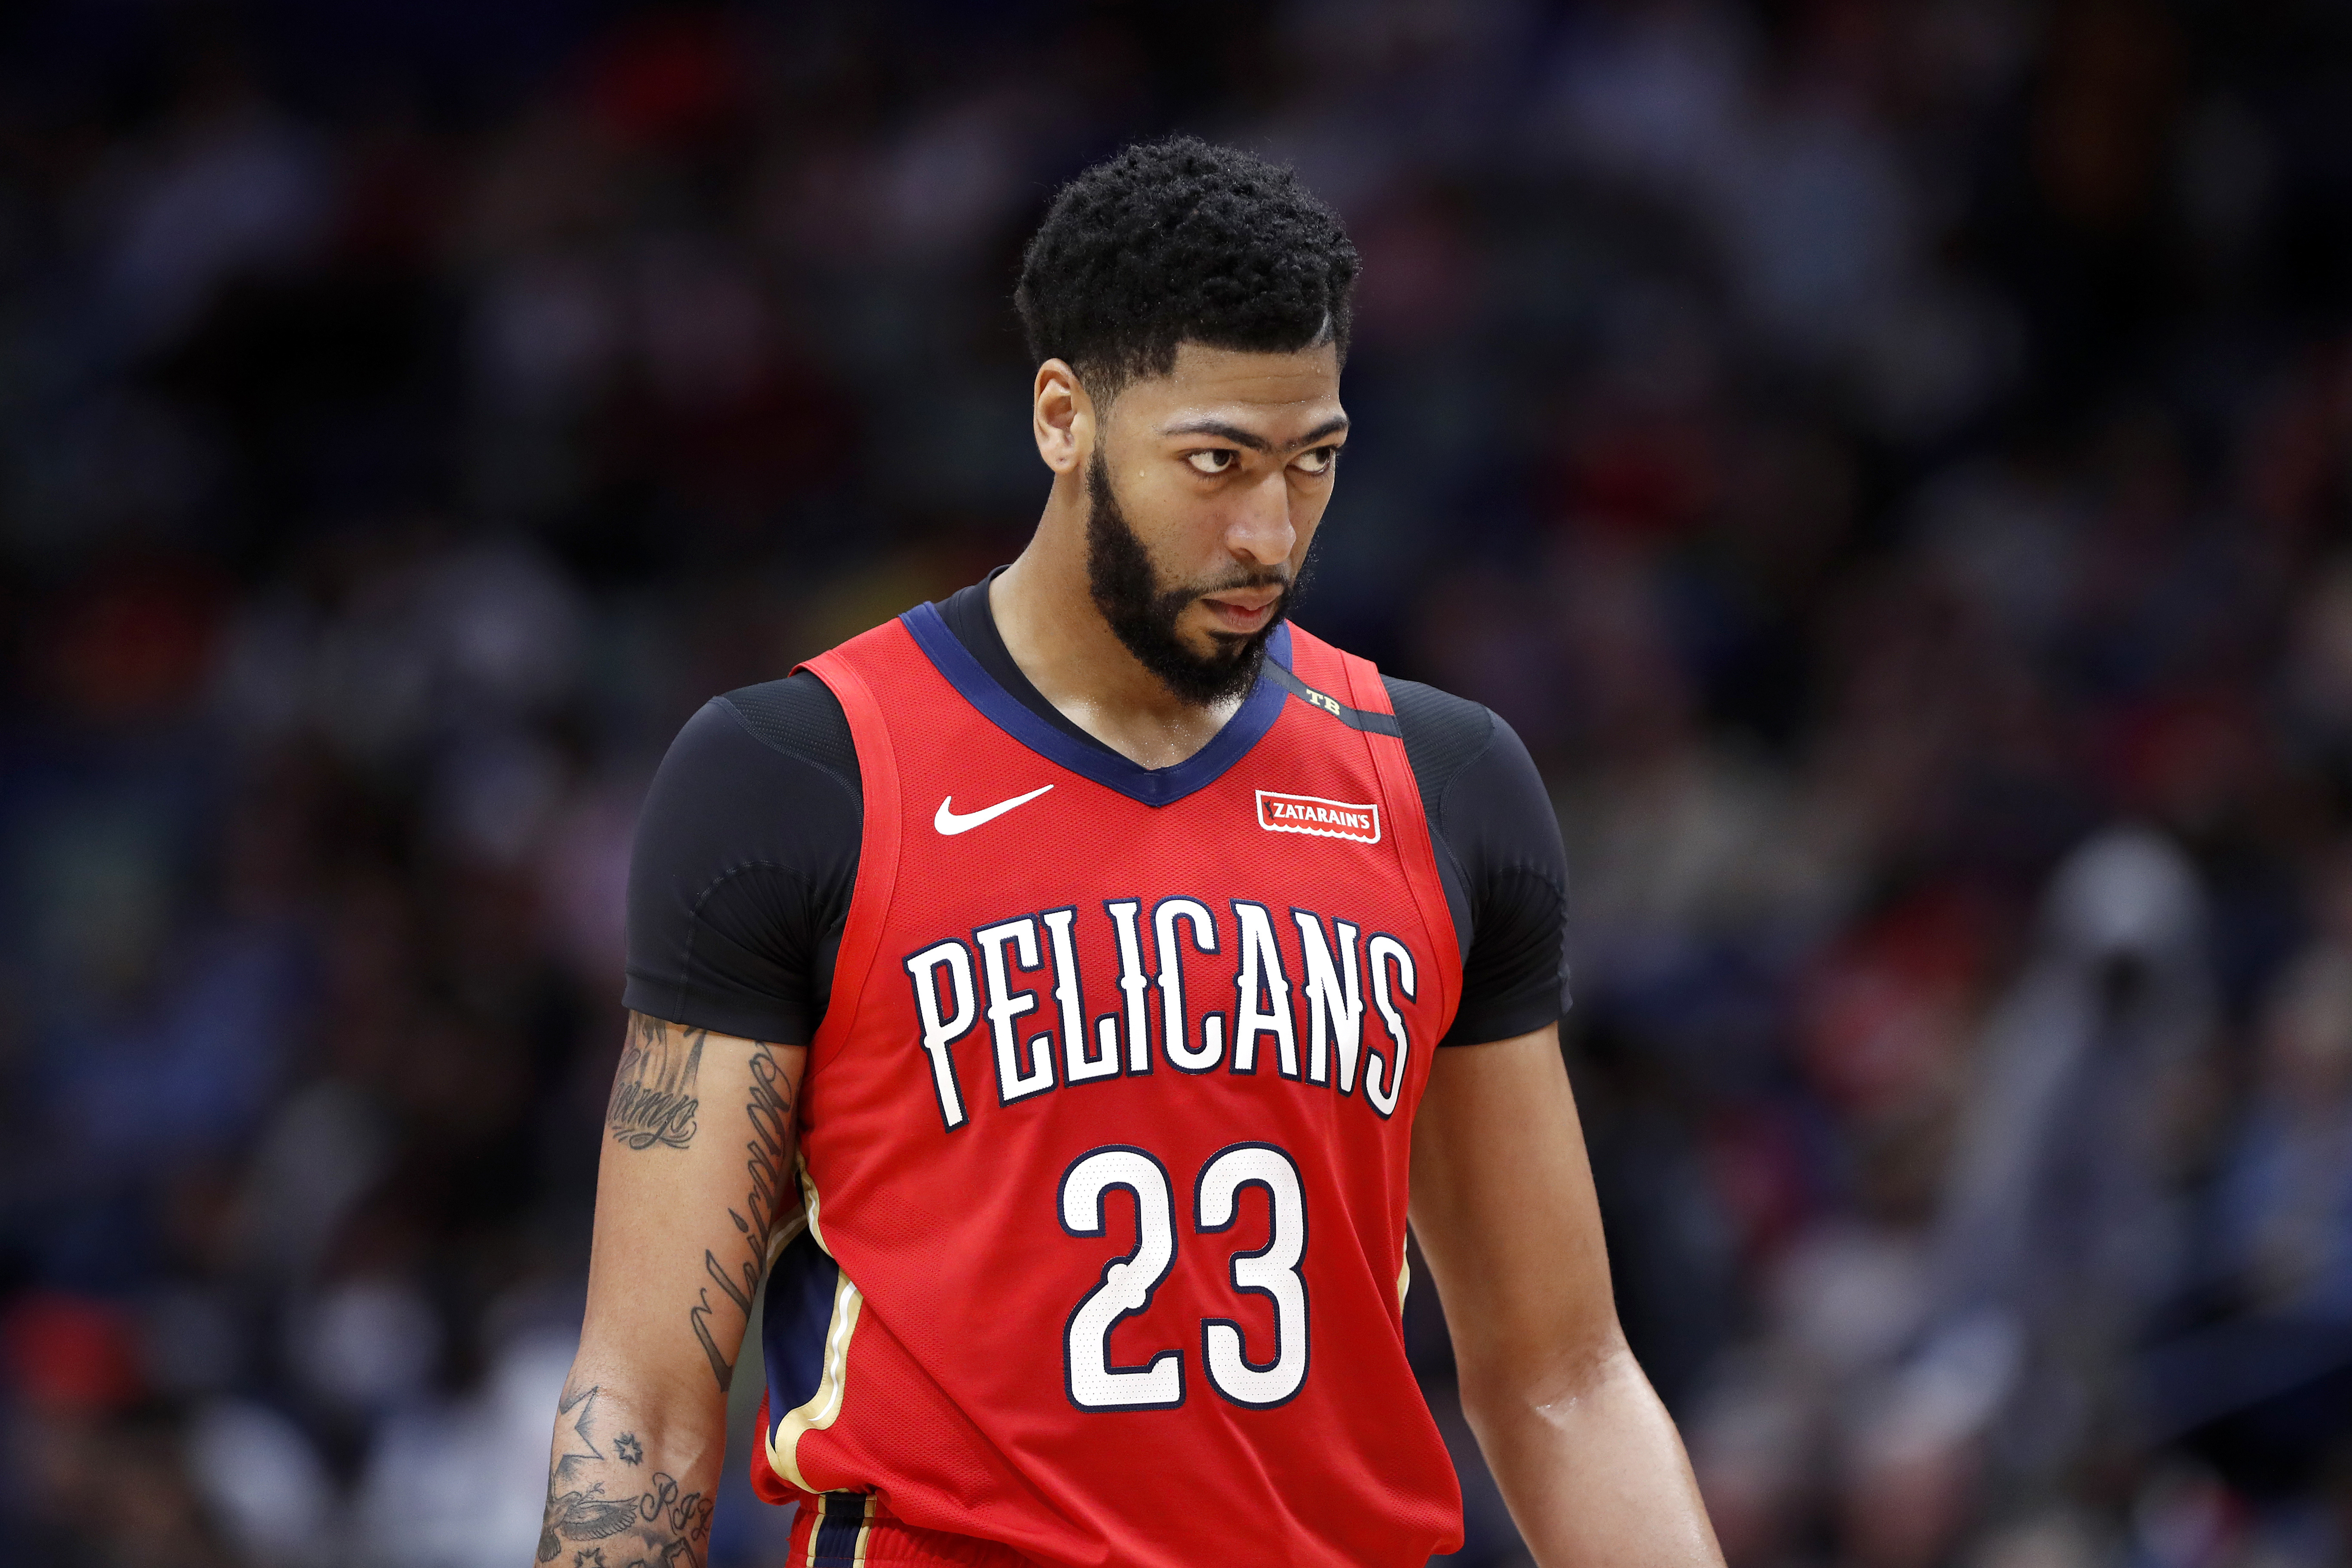 Saturday s NBA notebook  Davis says Celtics are on his list of trade  destinations. Anthony Davis says he will play for any team other ... f36d39c07